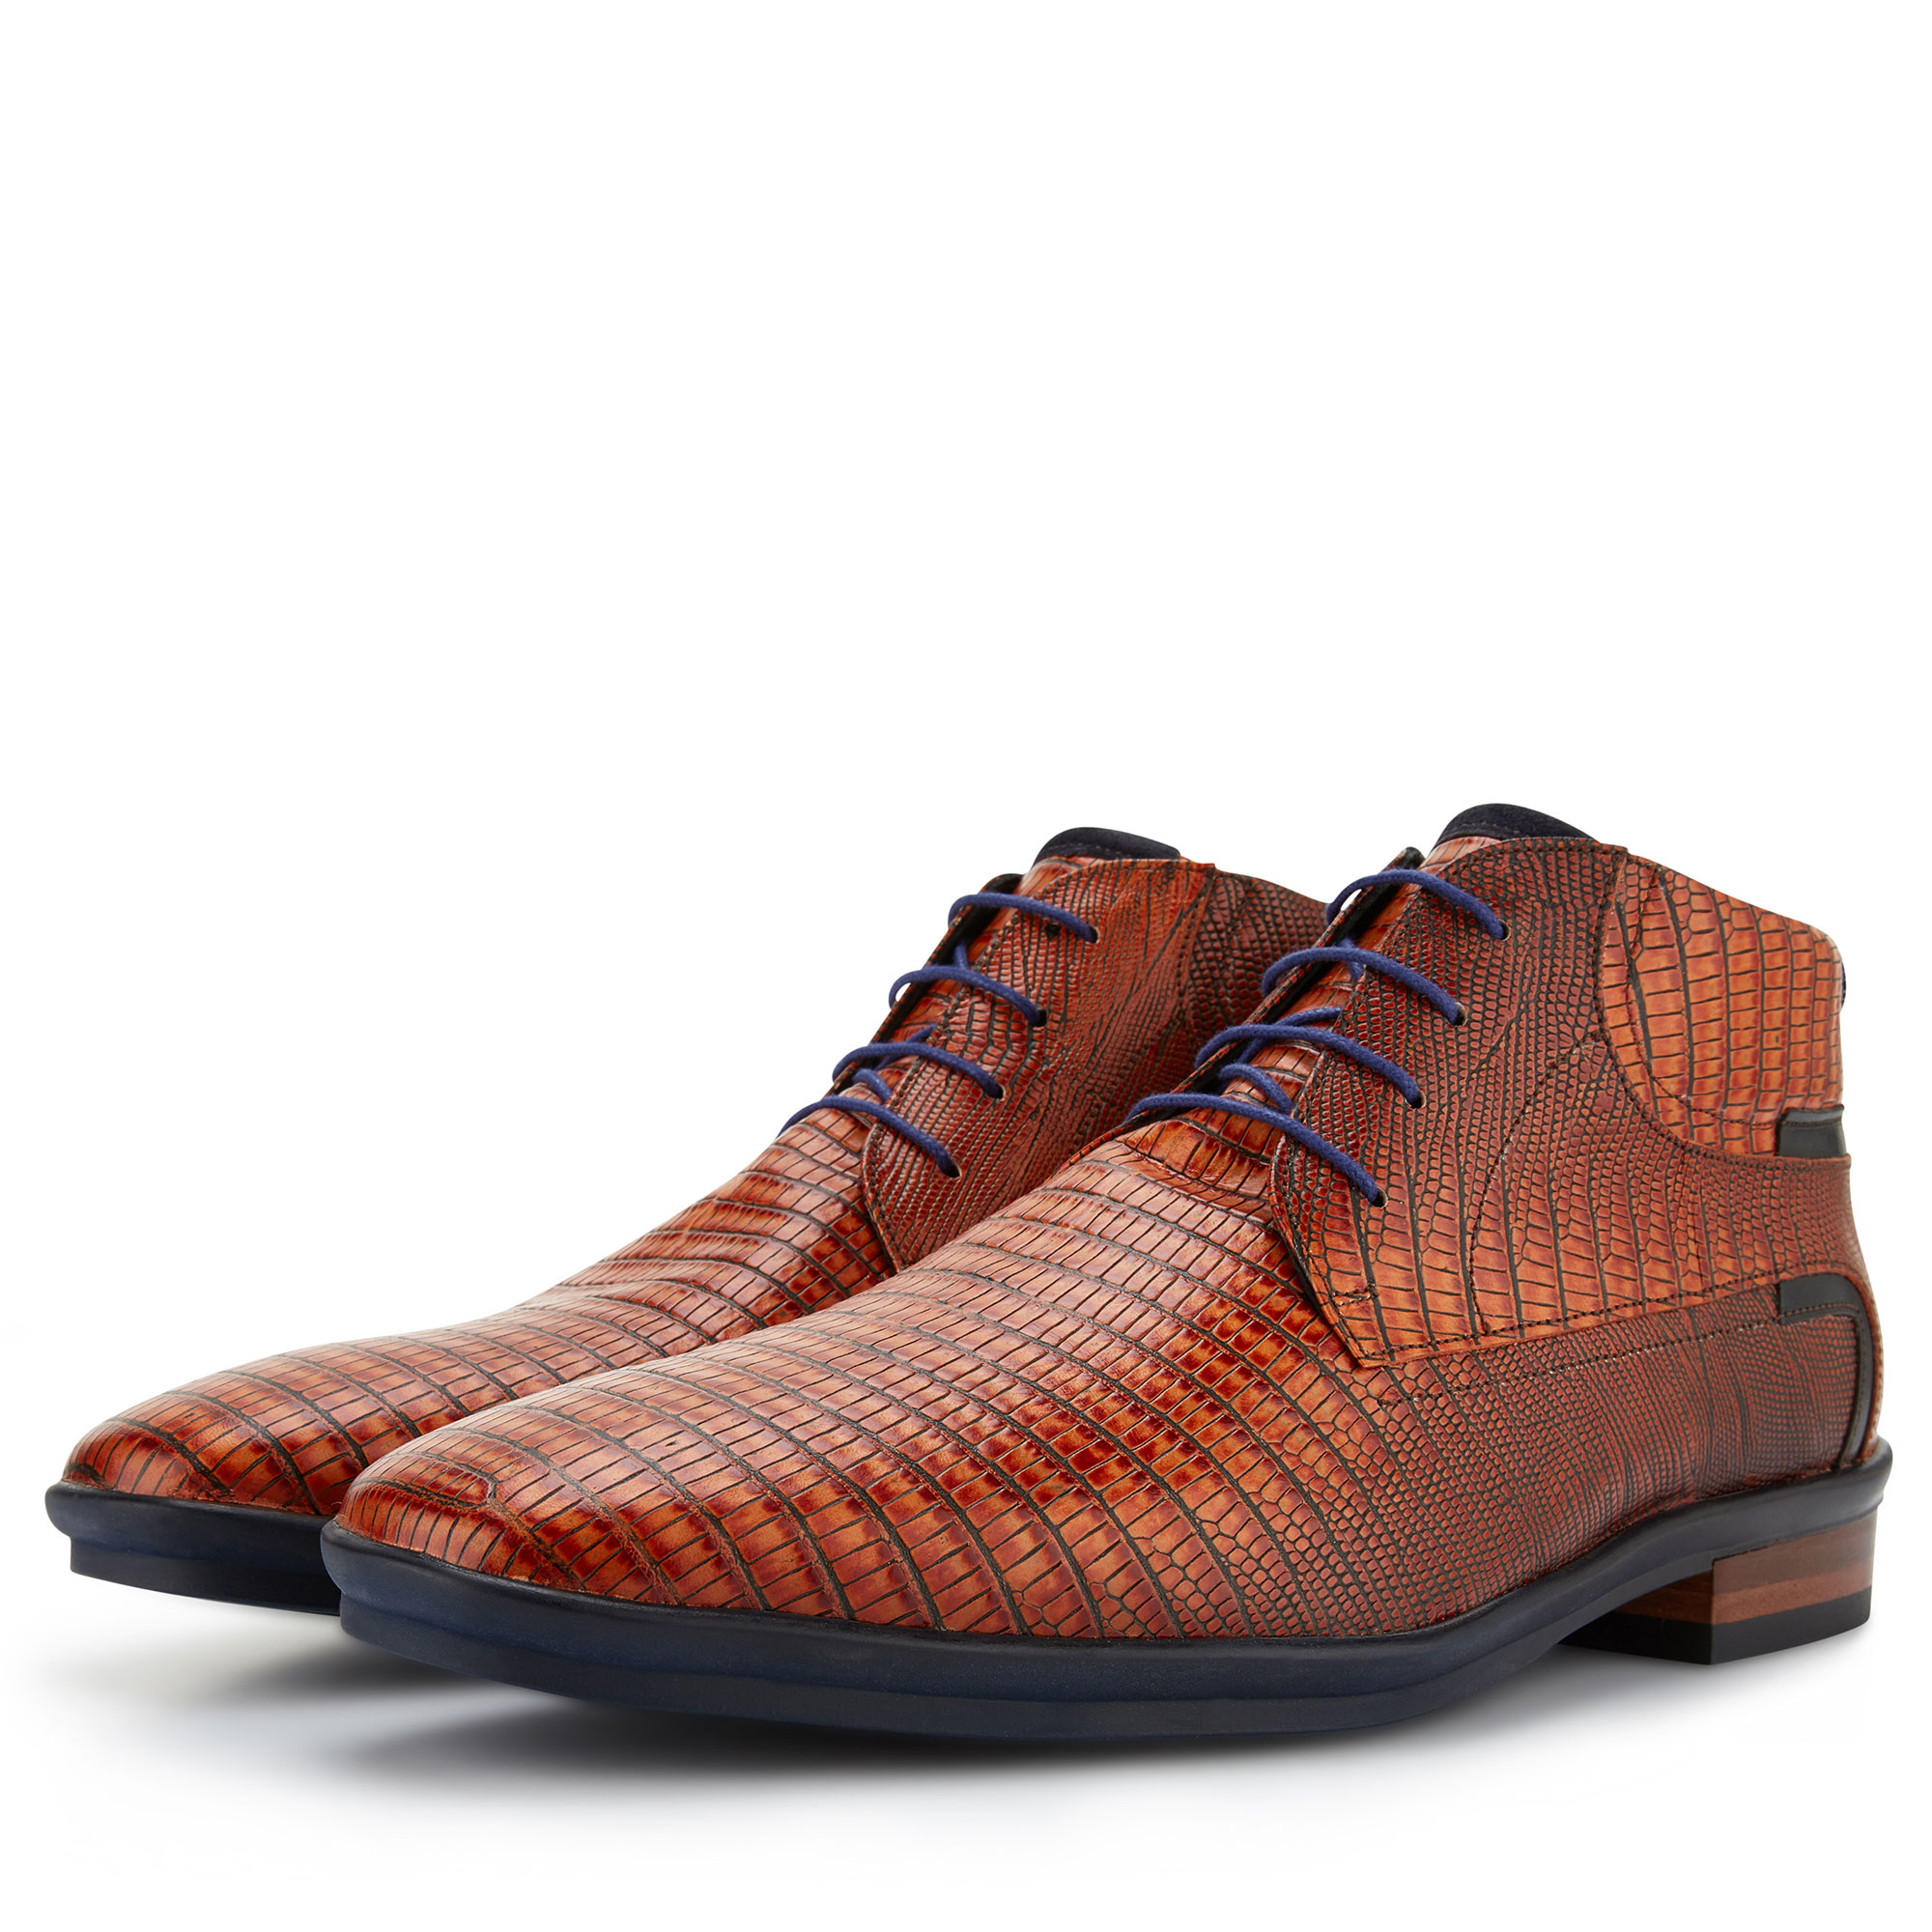 10879/00 - Cognac lace boot with lizard print